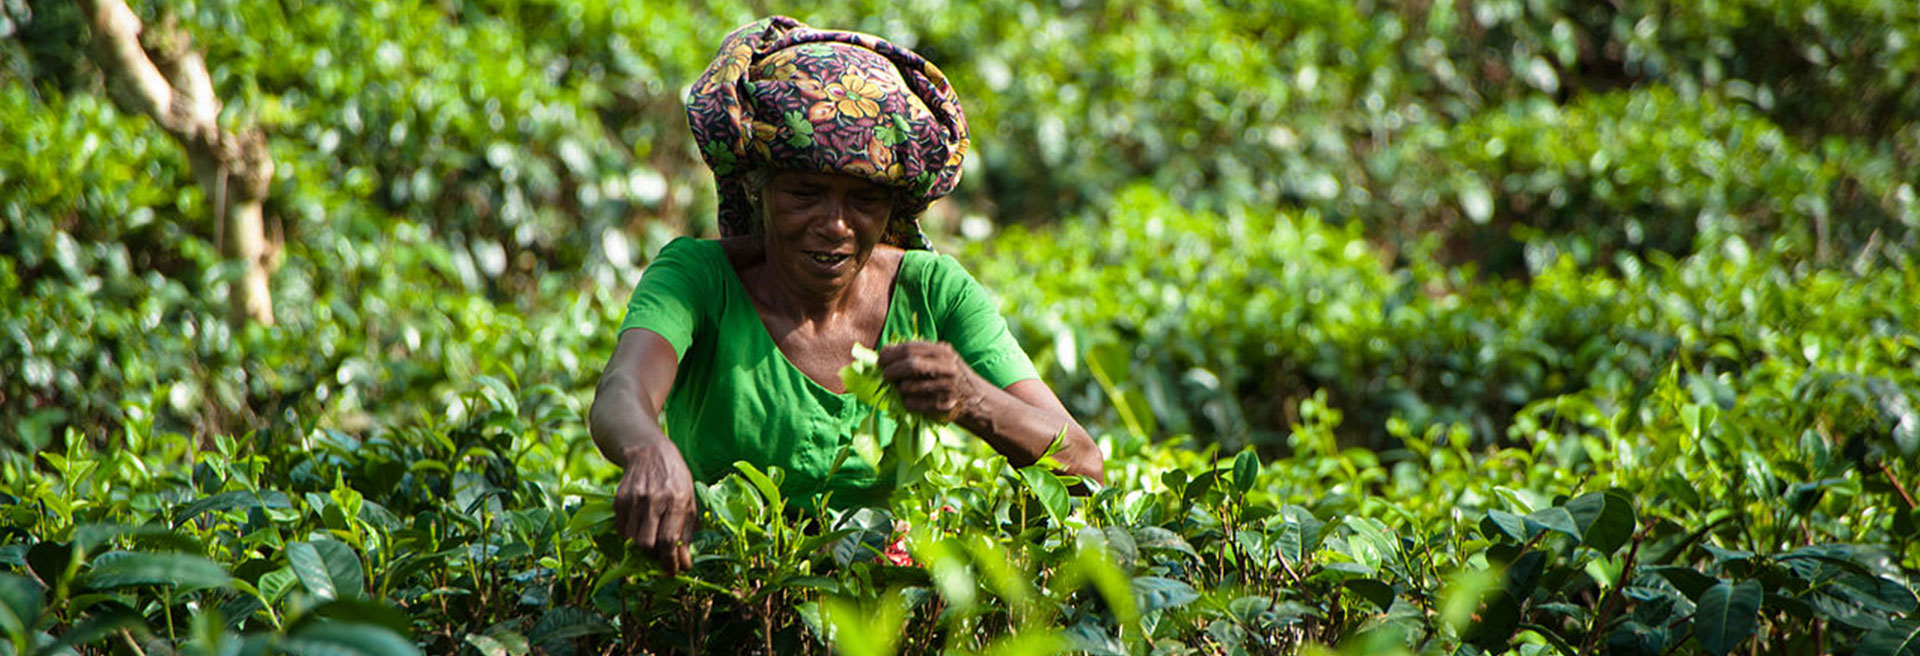 lady plucking tea leaves